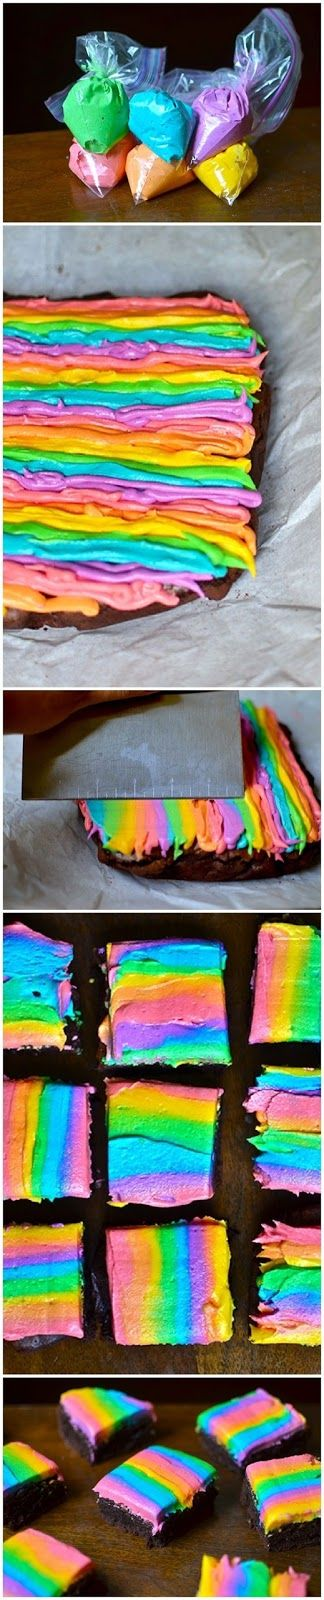 Rainbow Iced Brownies| Put lines of icing then smear with spatula. Gives off a really cool blended effect. This would look amazing as a spiral.